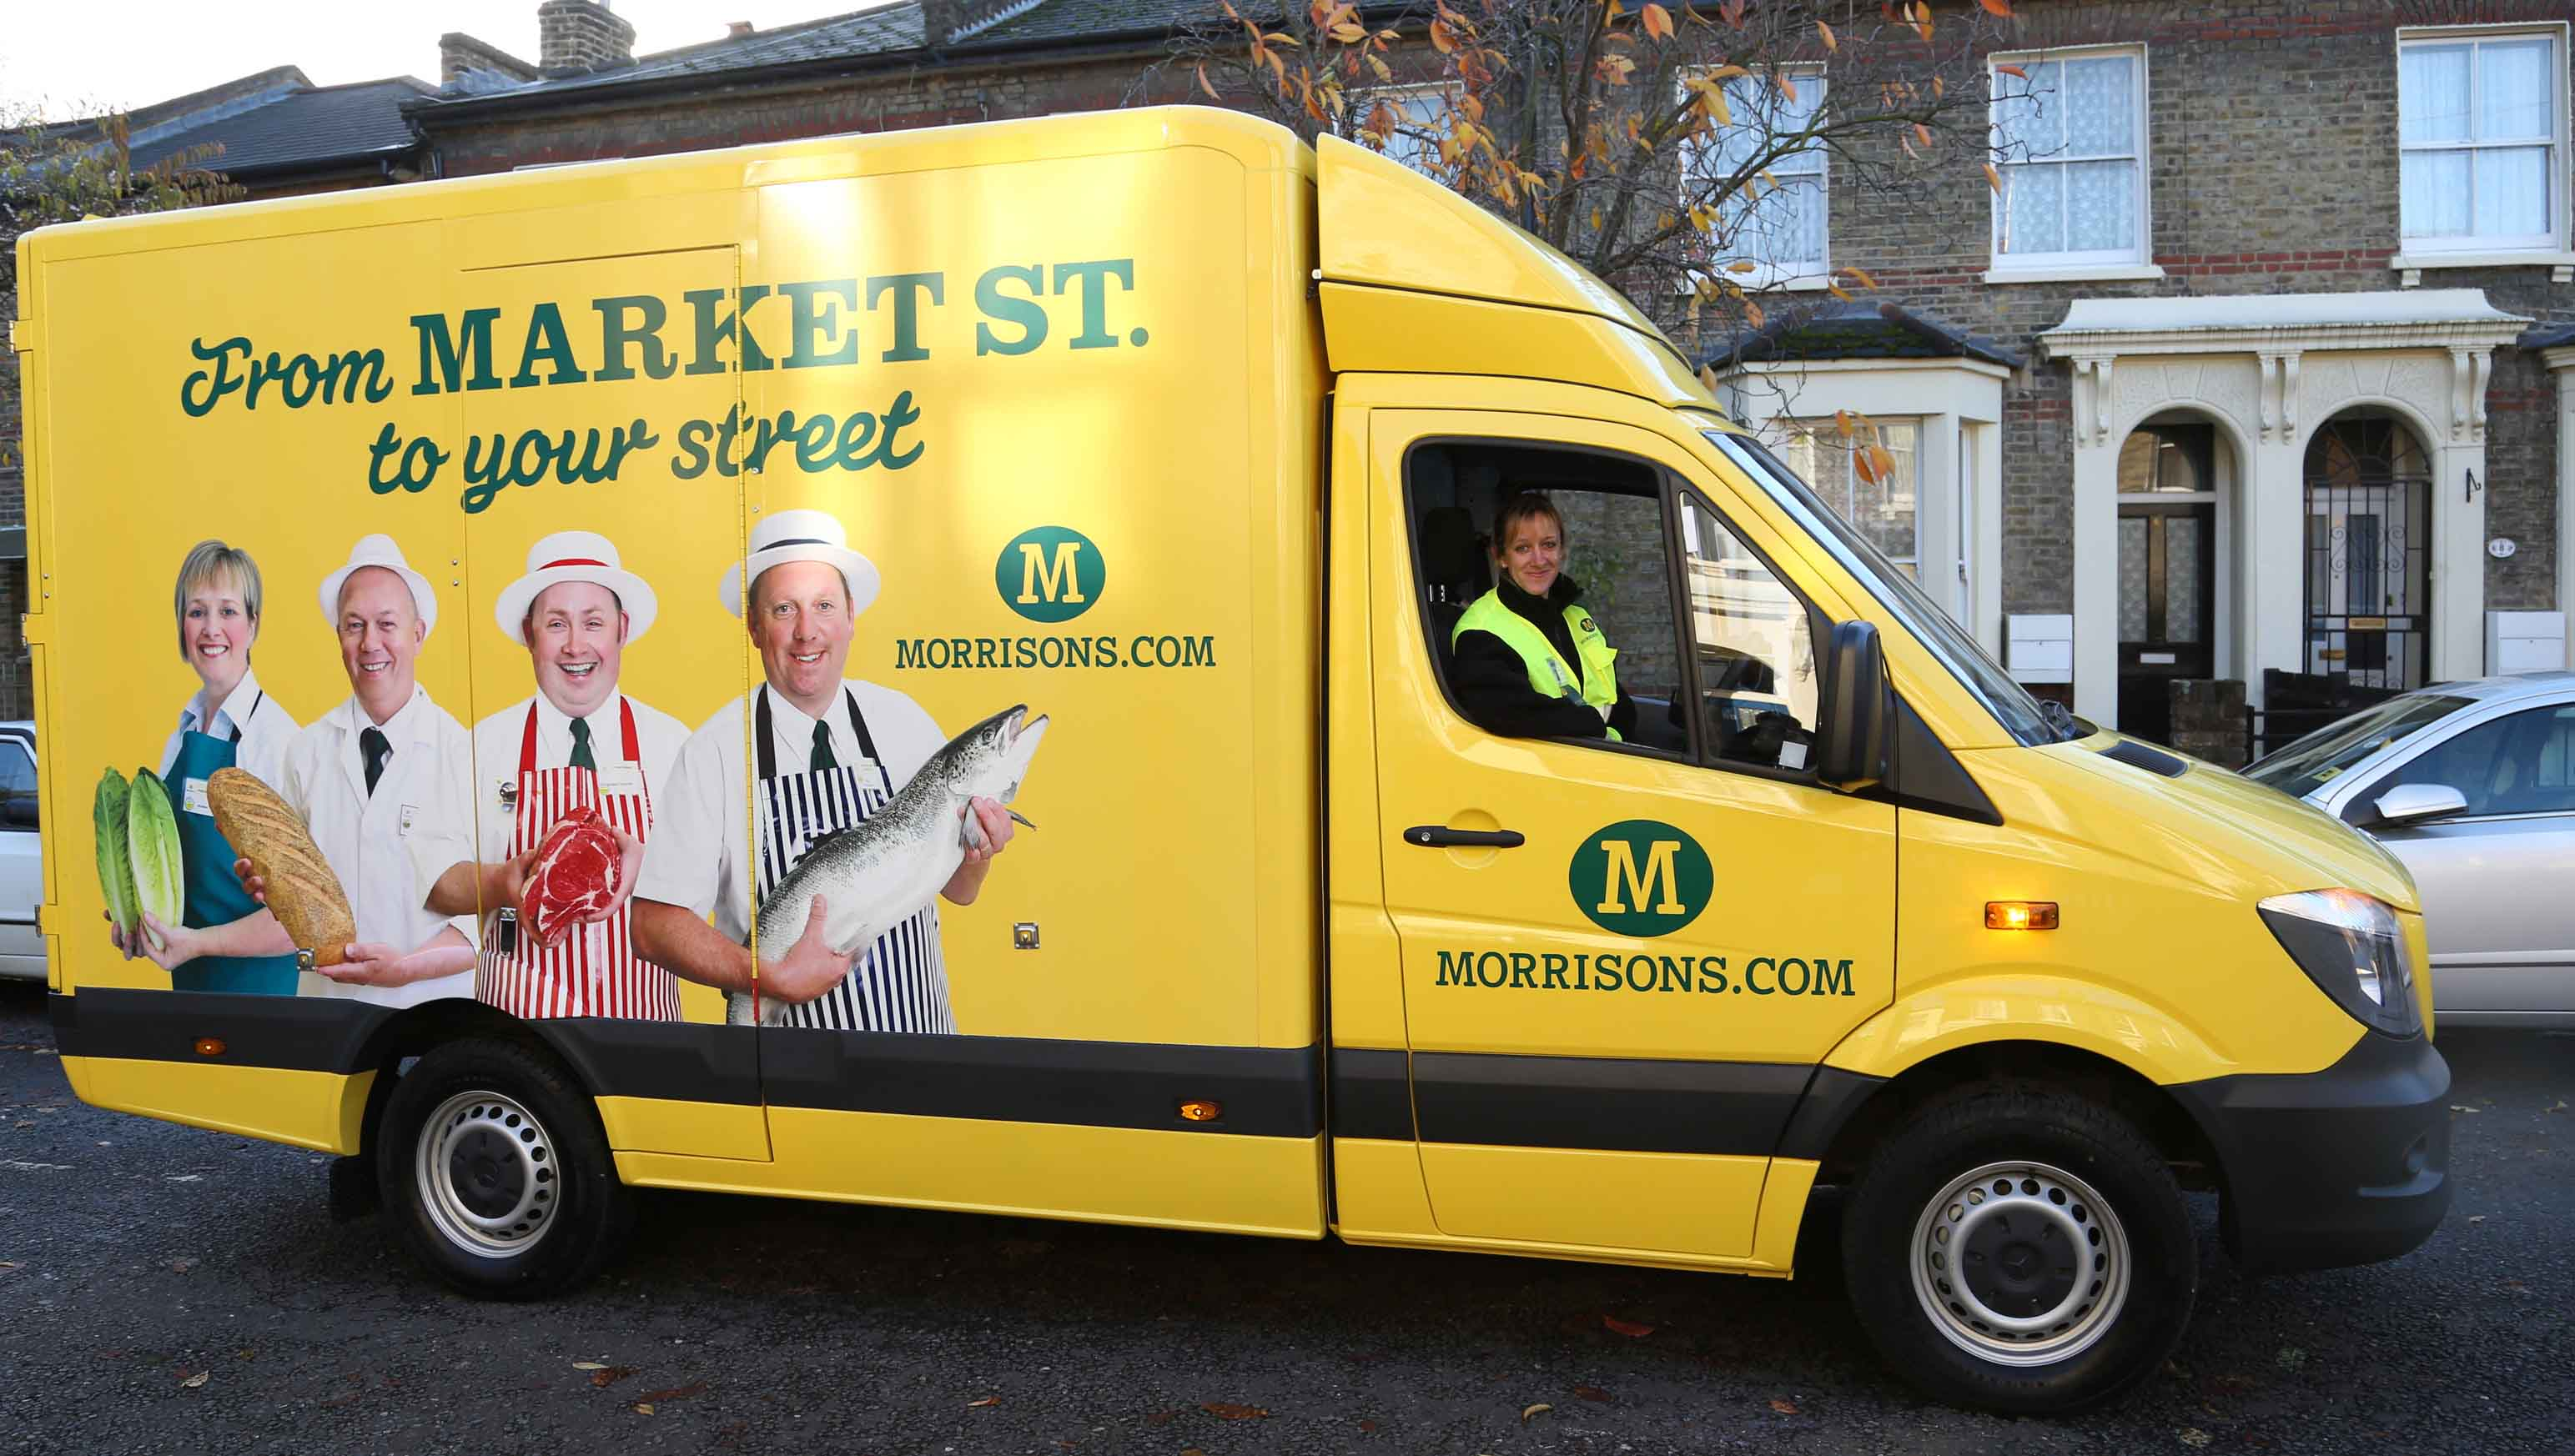 Amazon Signs Deal with Morrisons to Distribute Groceries